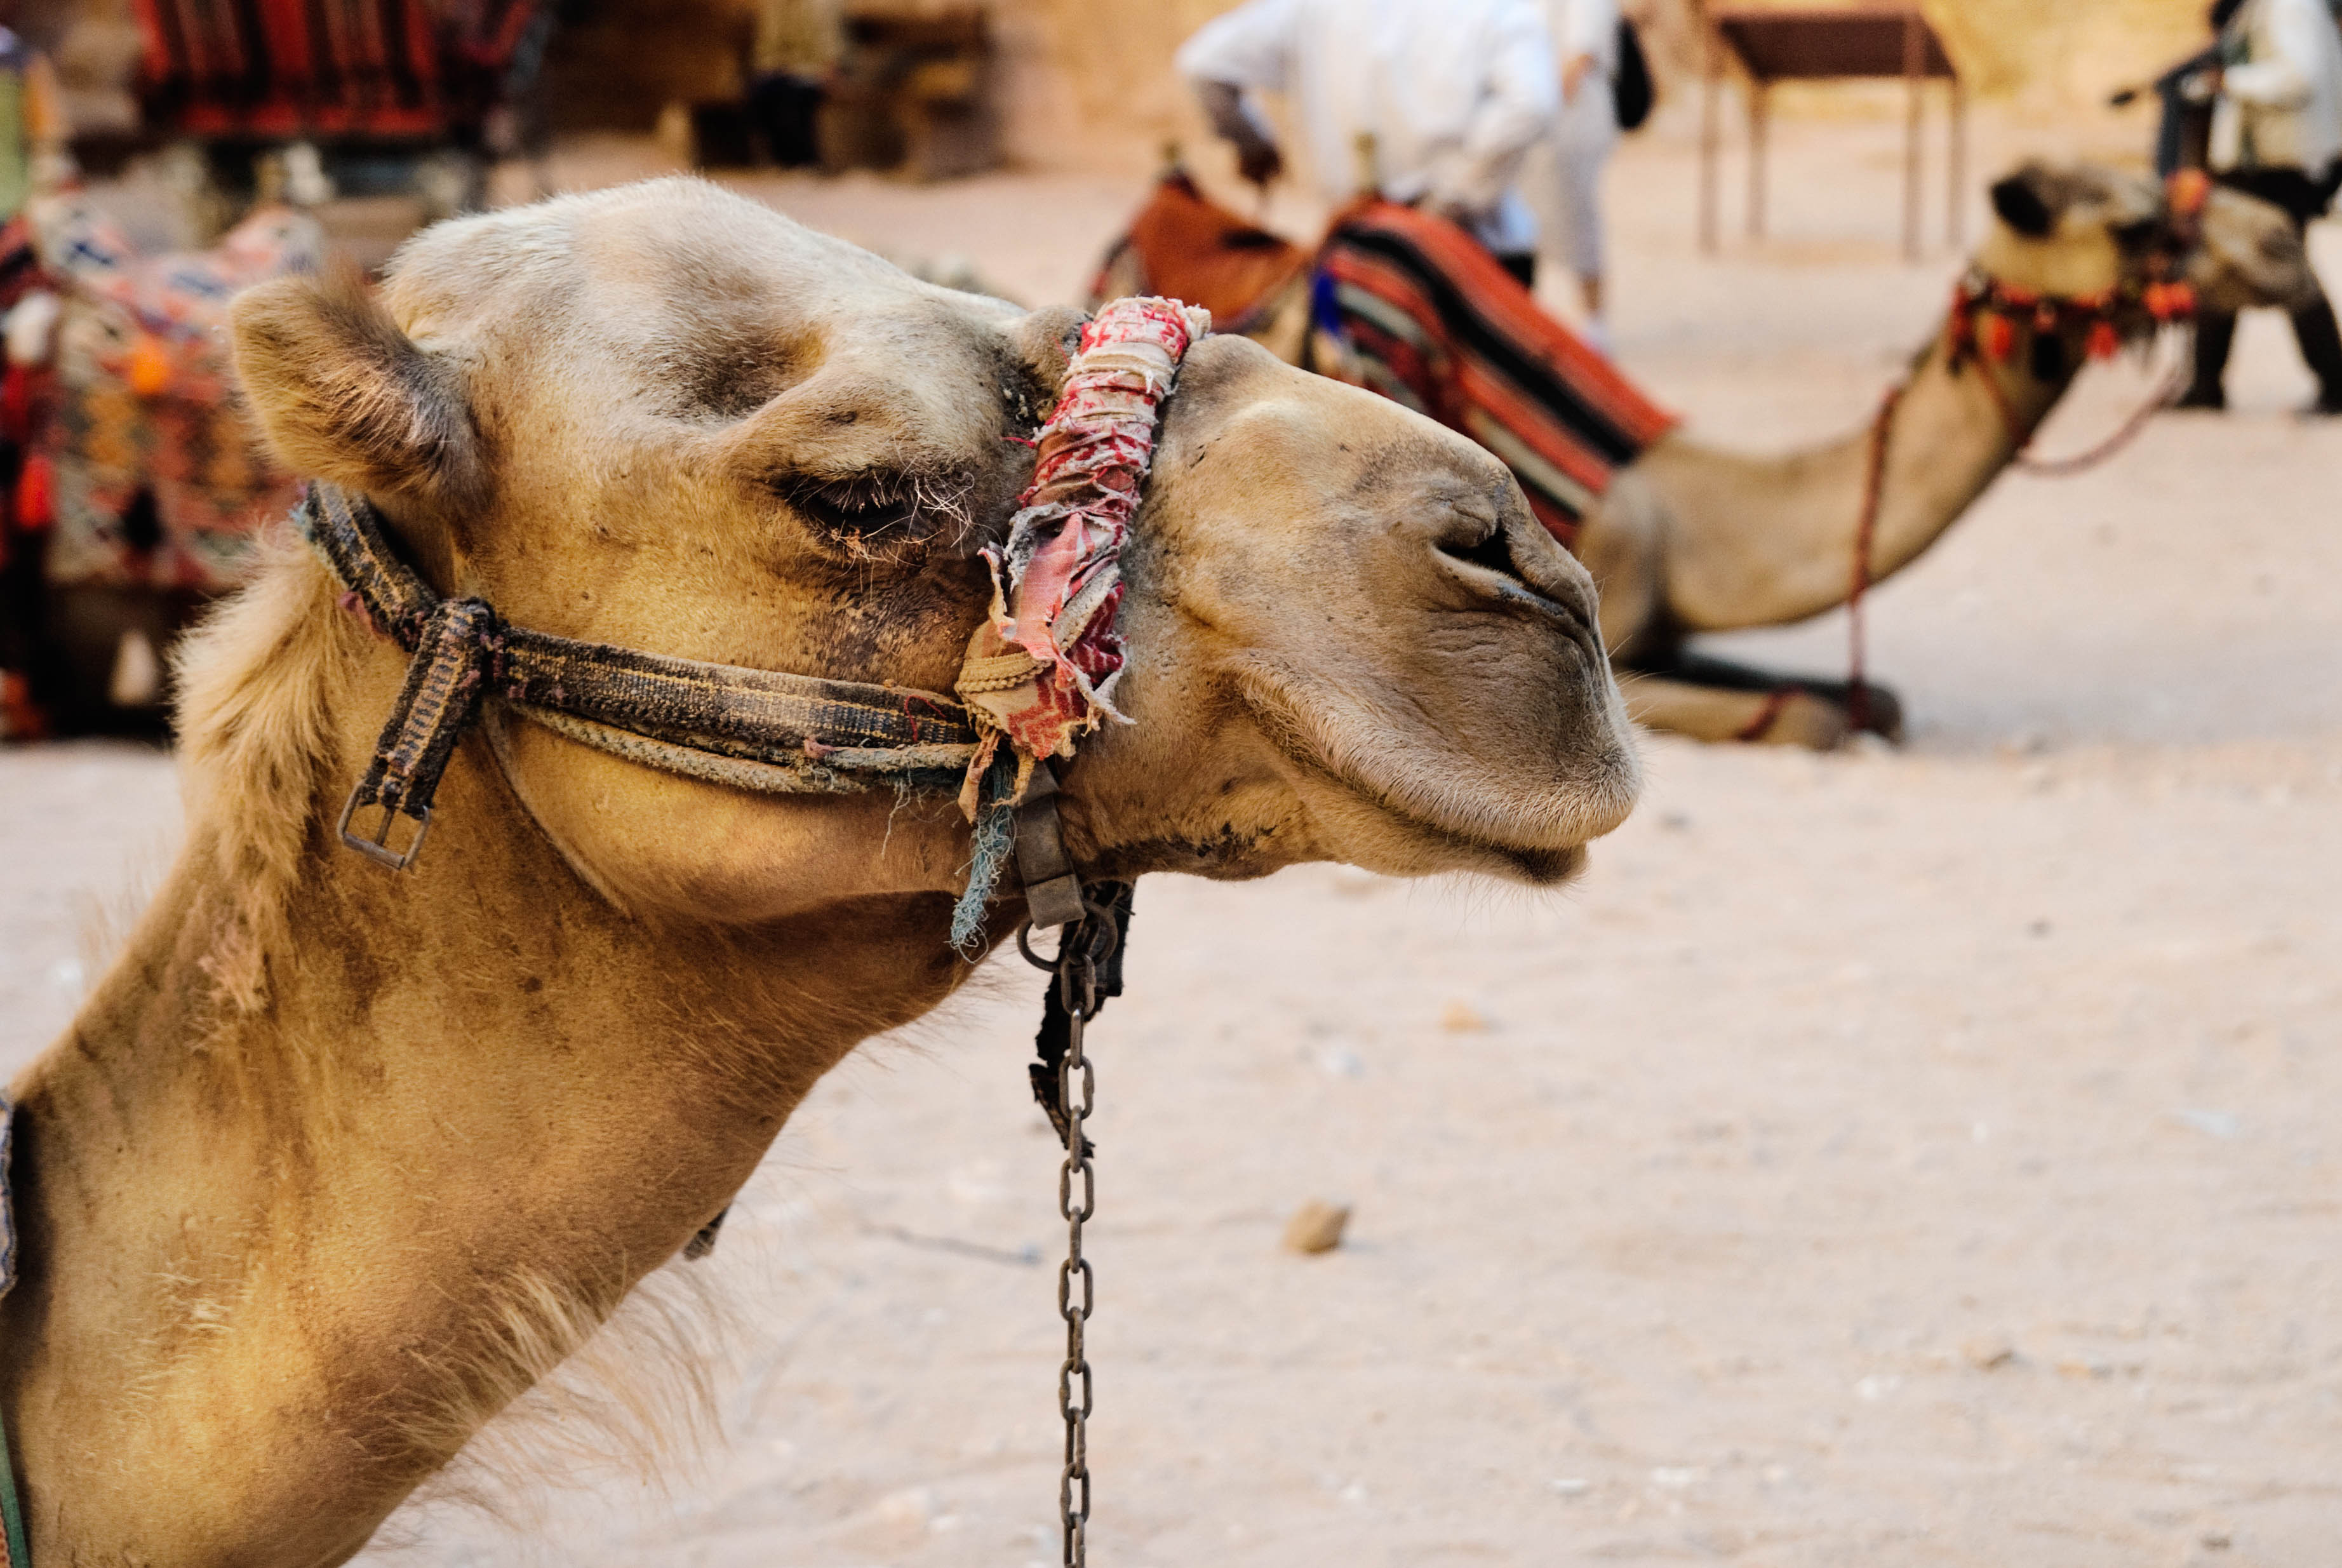 Is Camel Riding Ethical? | Sustainable Travel in Egypt